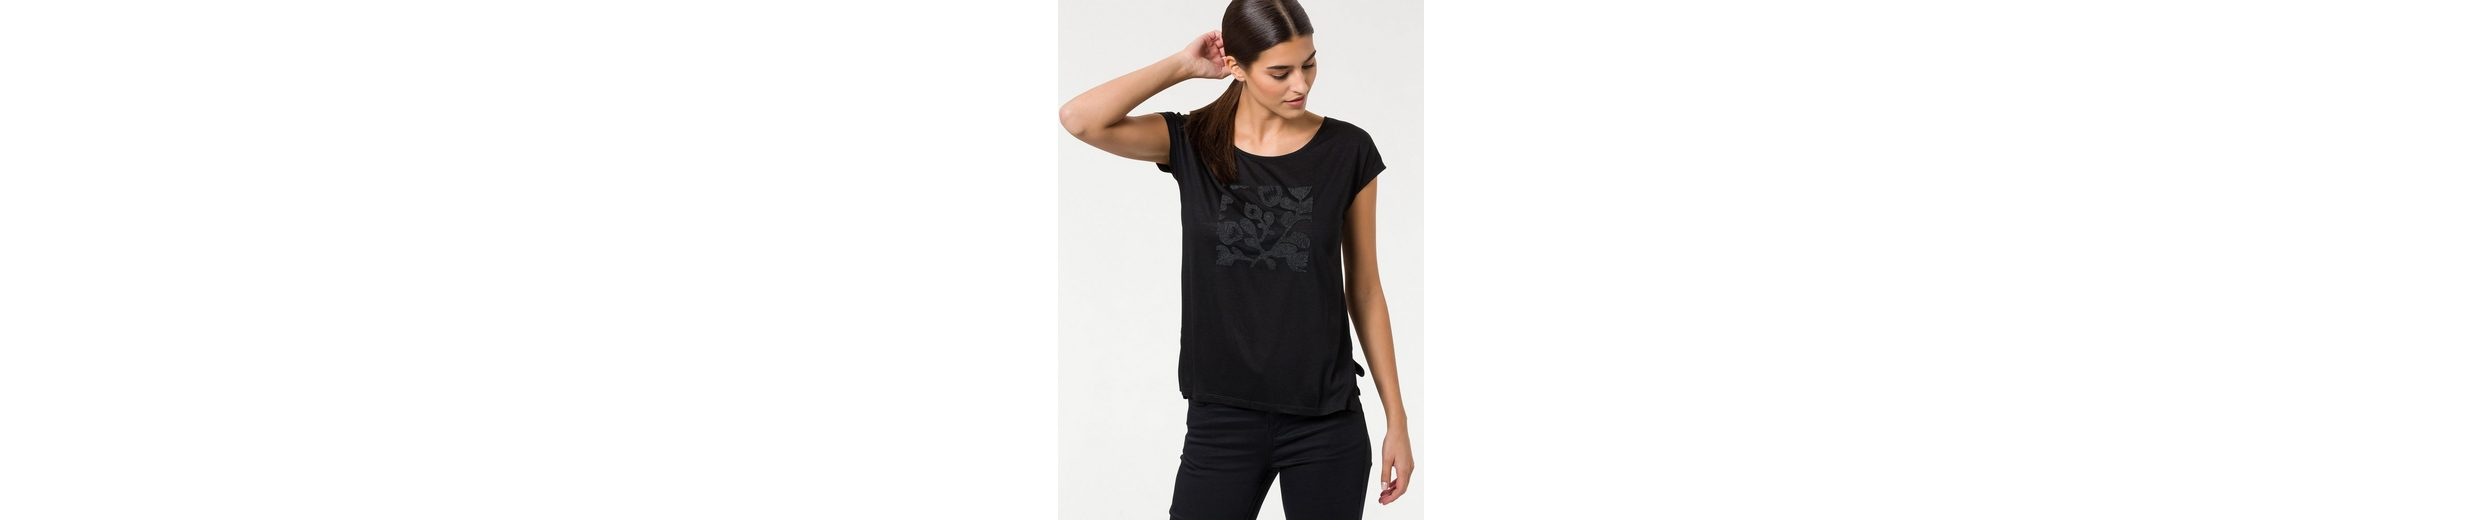 BROADWAY NYC FASHION T-Shirt Lene, mit hochwertigem Perlen-Print